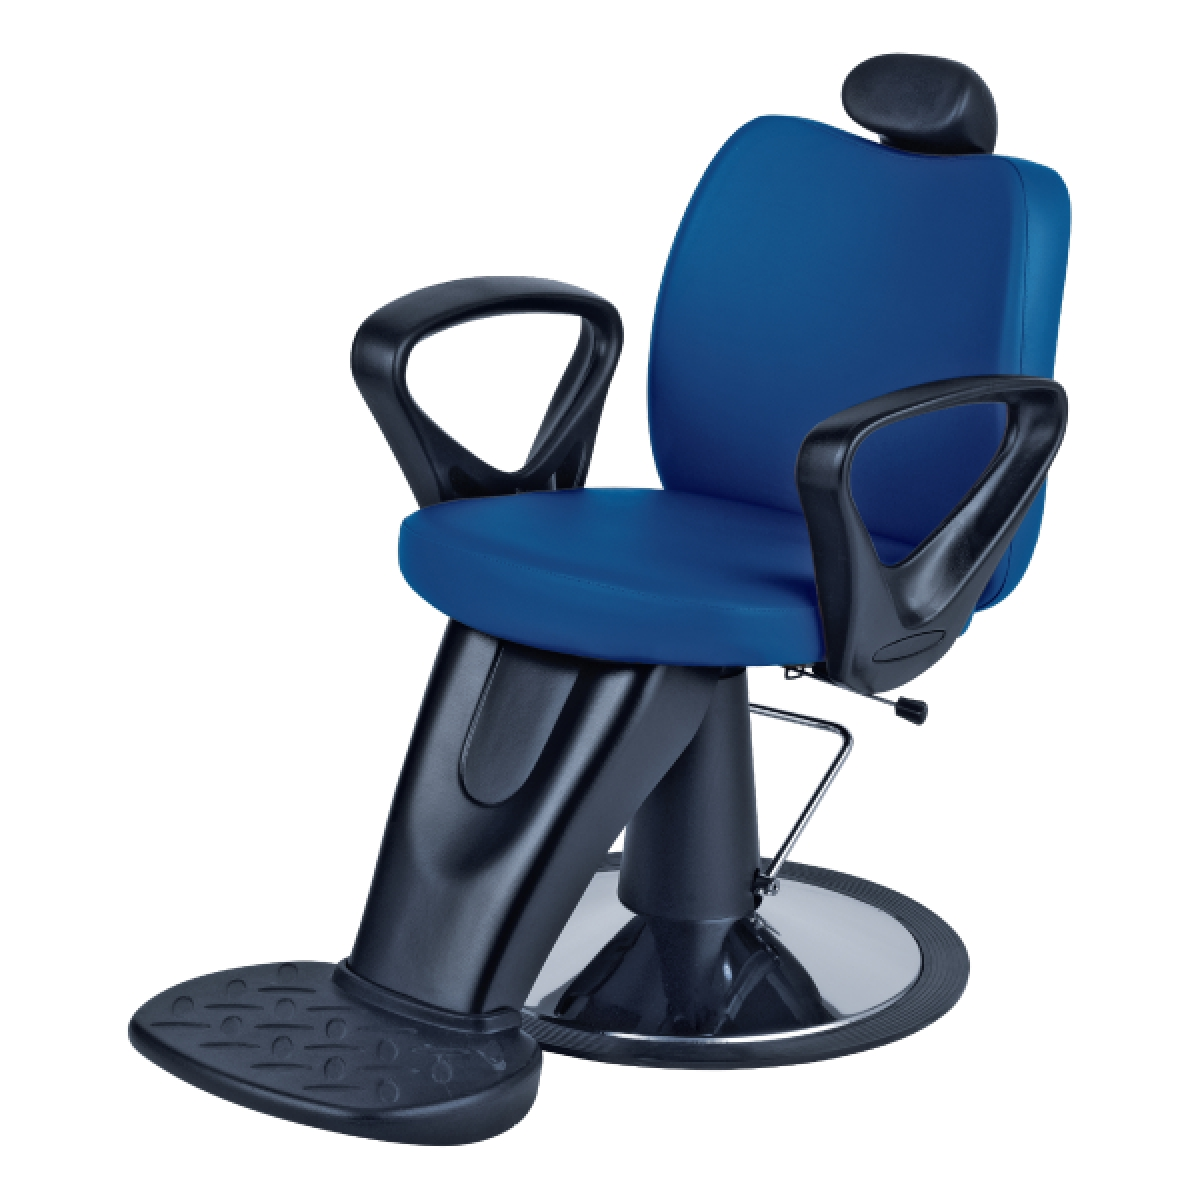 Regal Salon Furniture Has The Hottest Barber Chairs On The Market